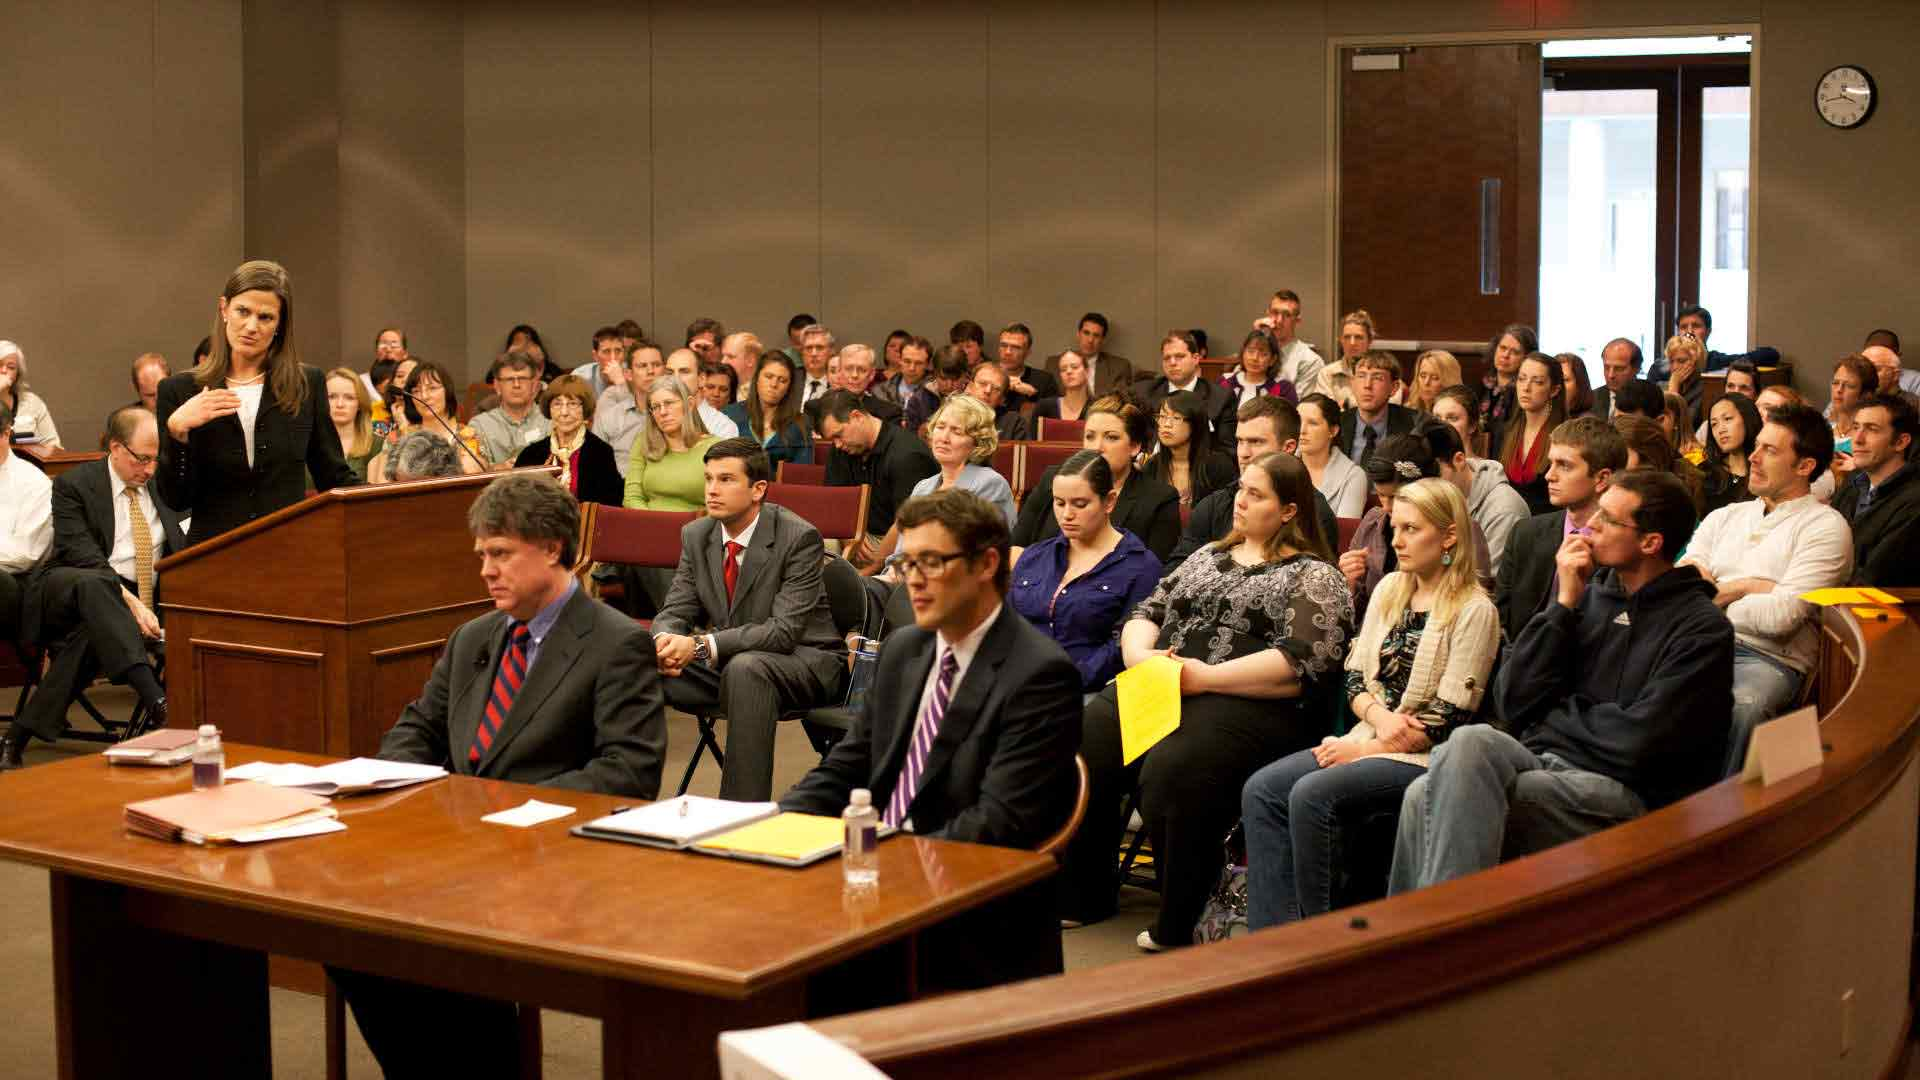 Environmental photo of a group sitting in a courtroom during a mock trial.